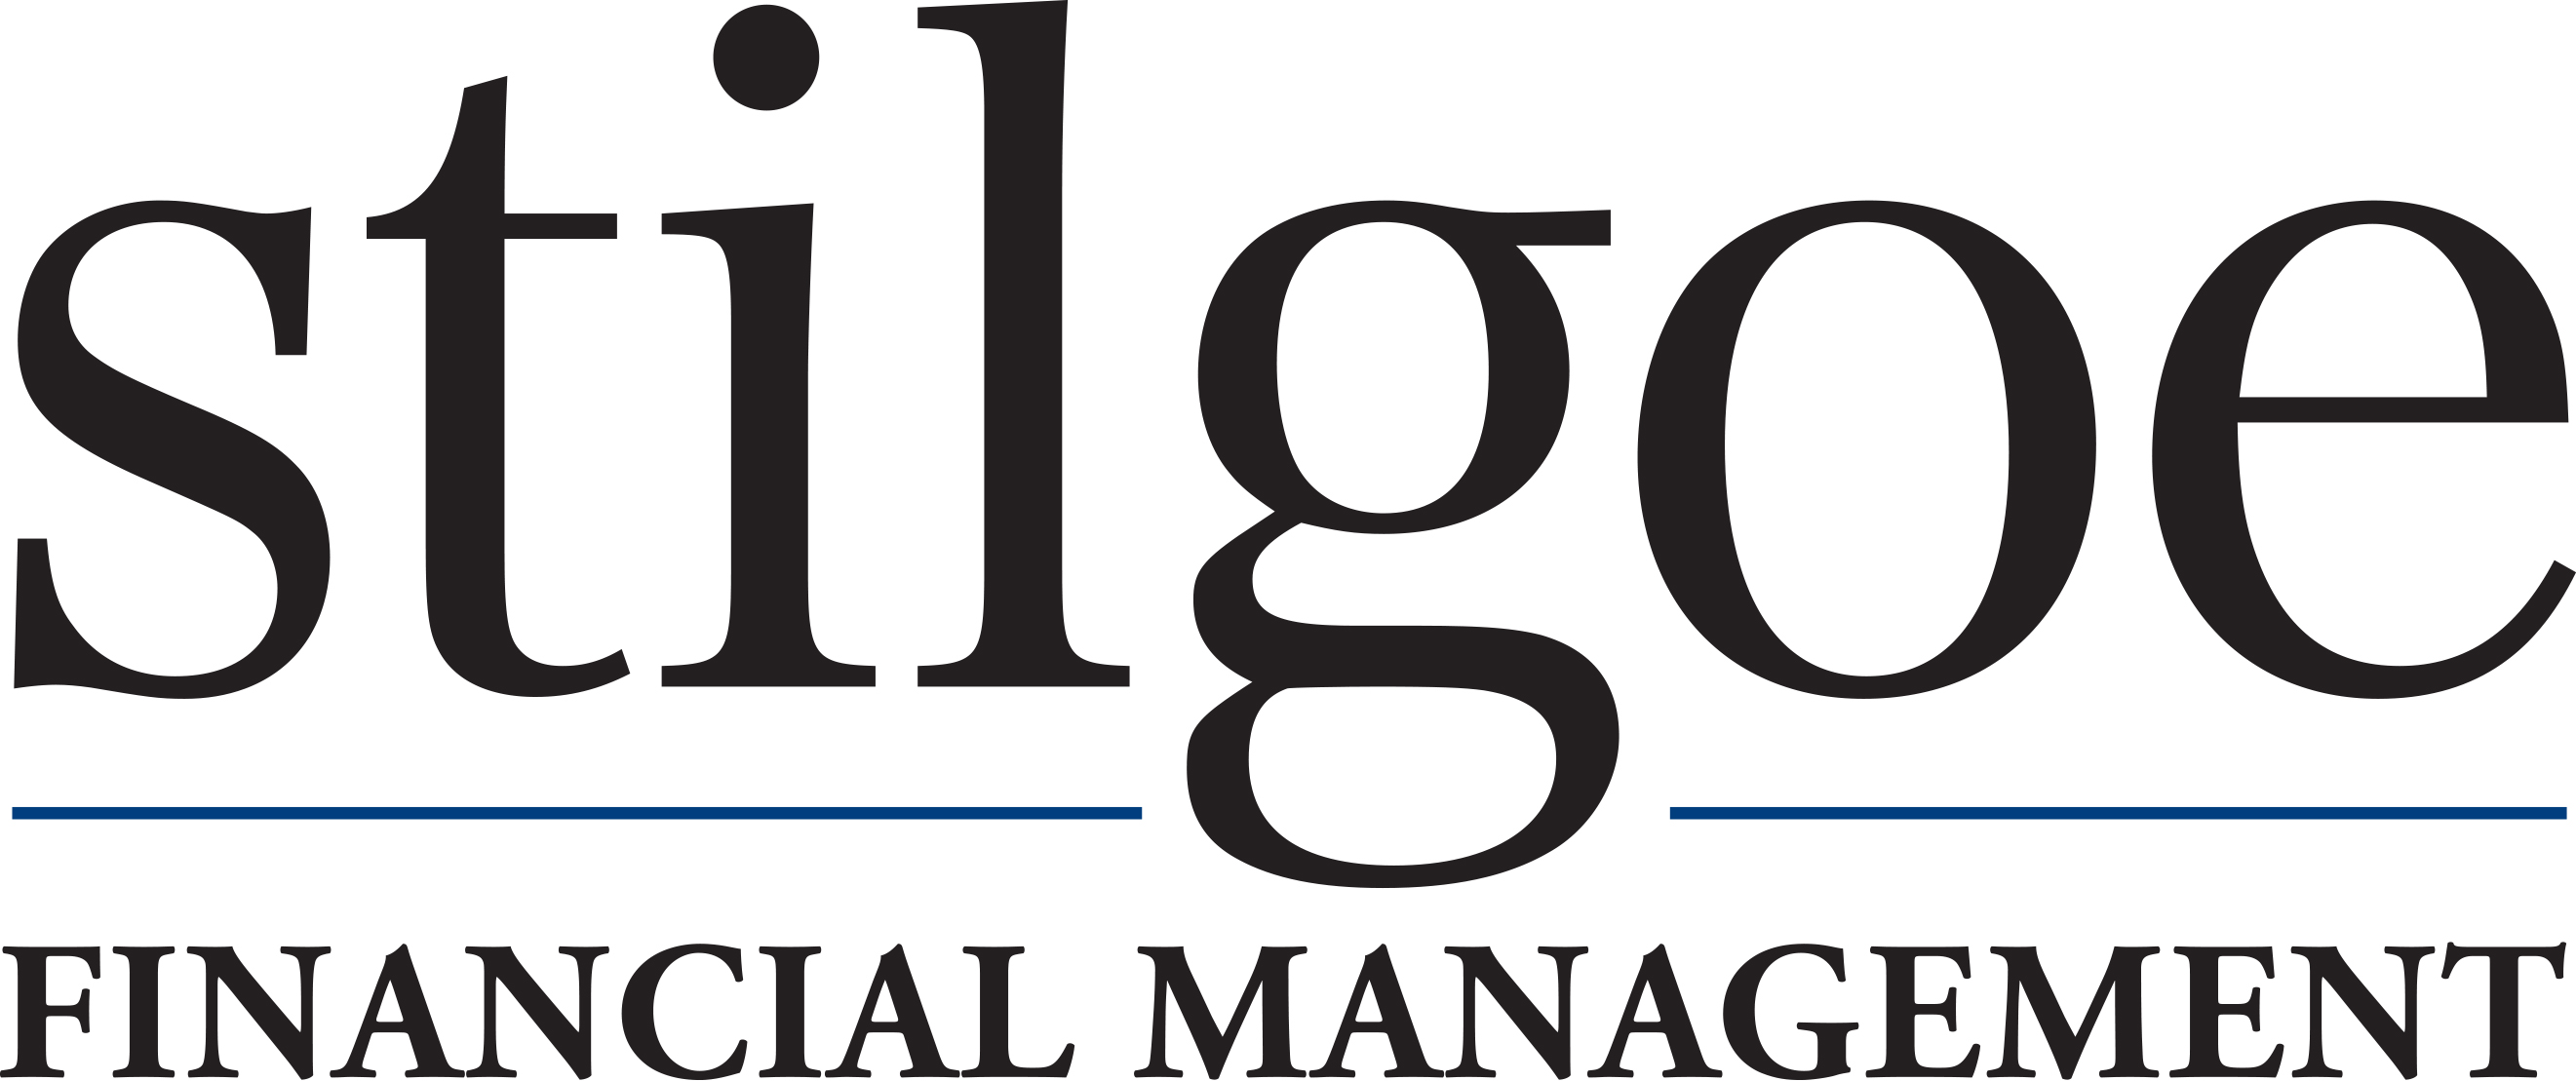 Stilgoe Financial Management logo